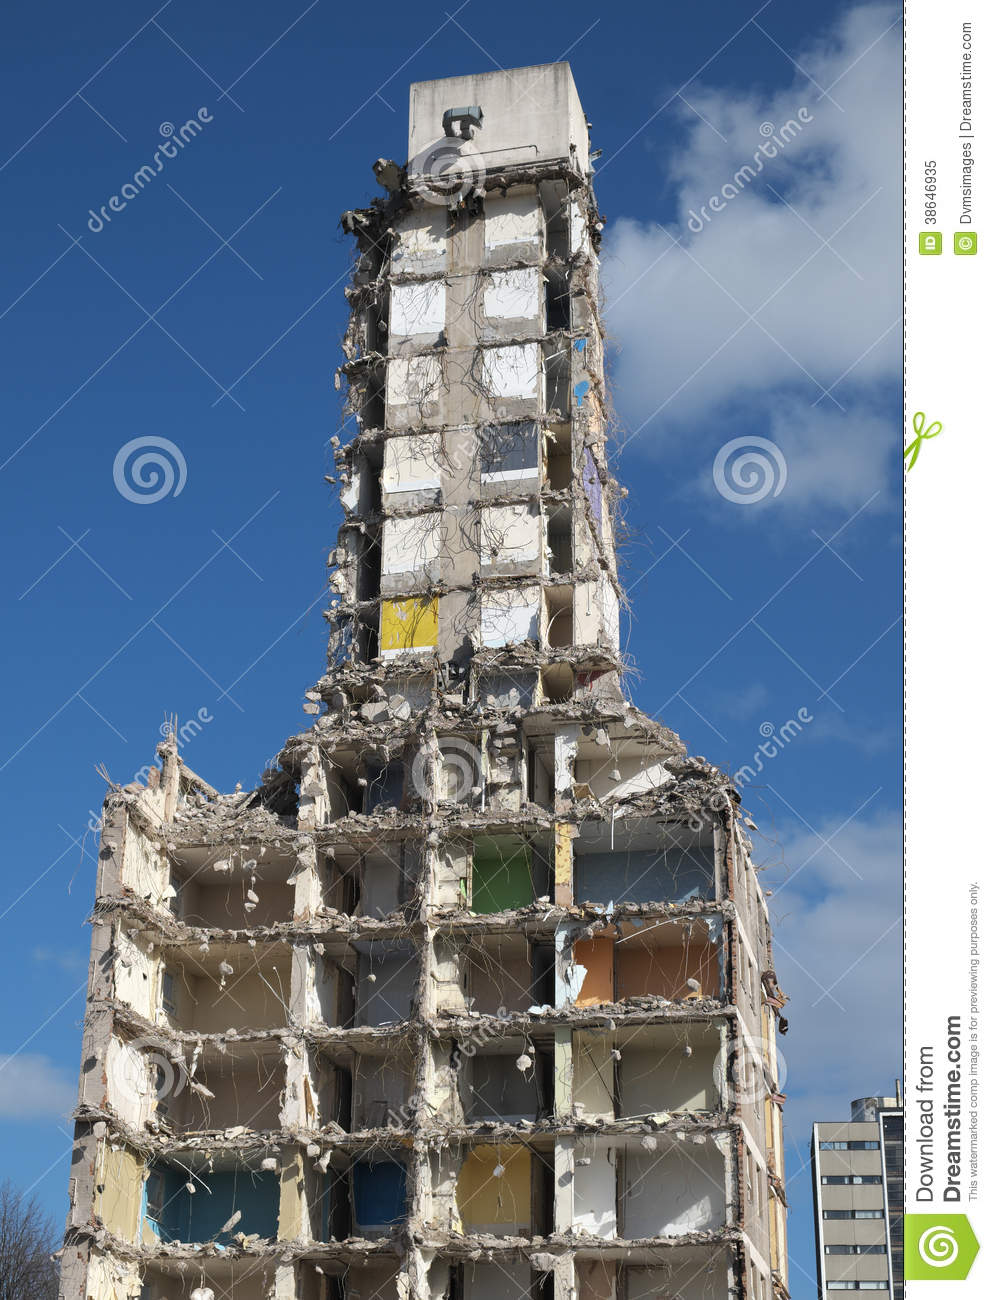 Demolition Of Highrise Flats Royalty Free Stock Photo.